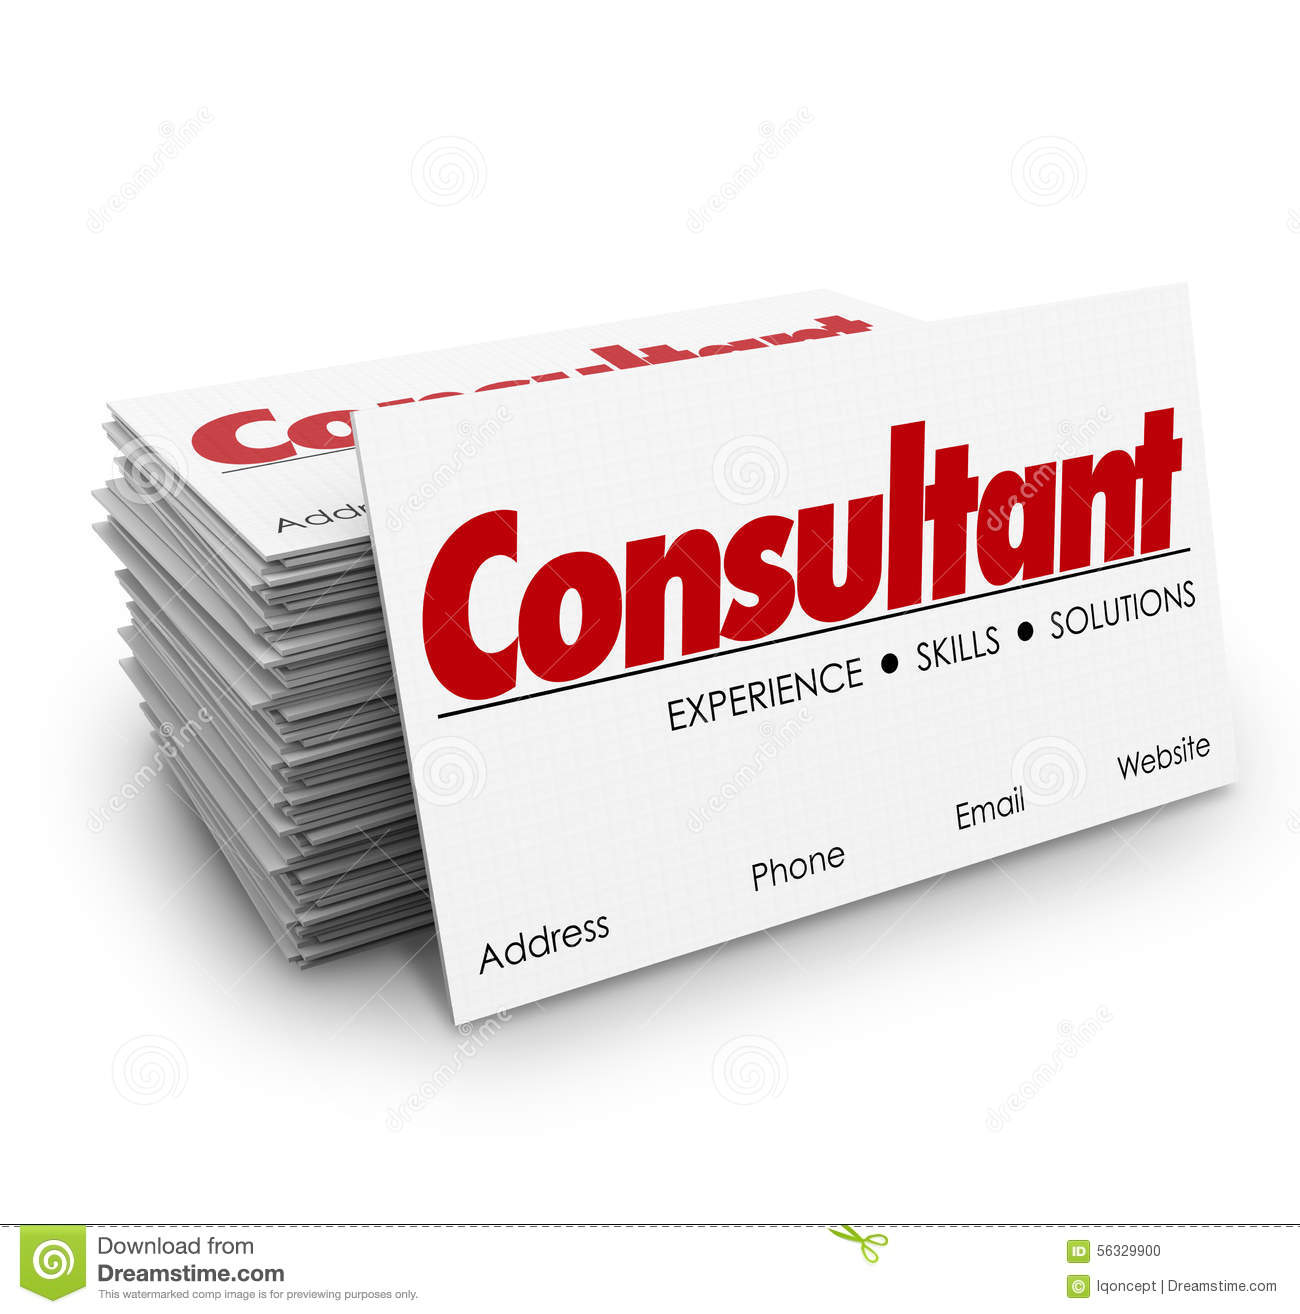 Consultant business cards expertise knowledge skills for What is a design consultant